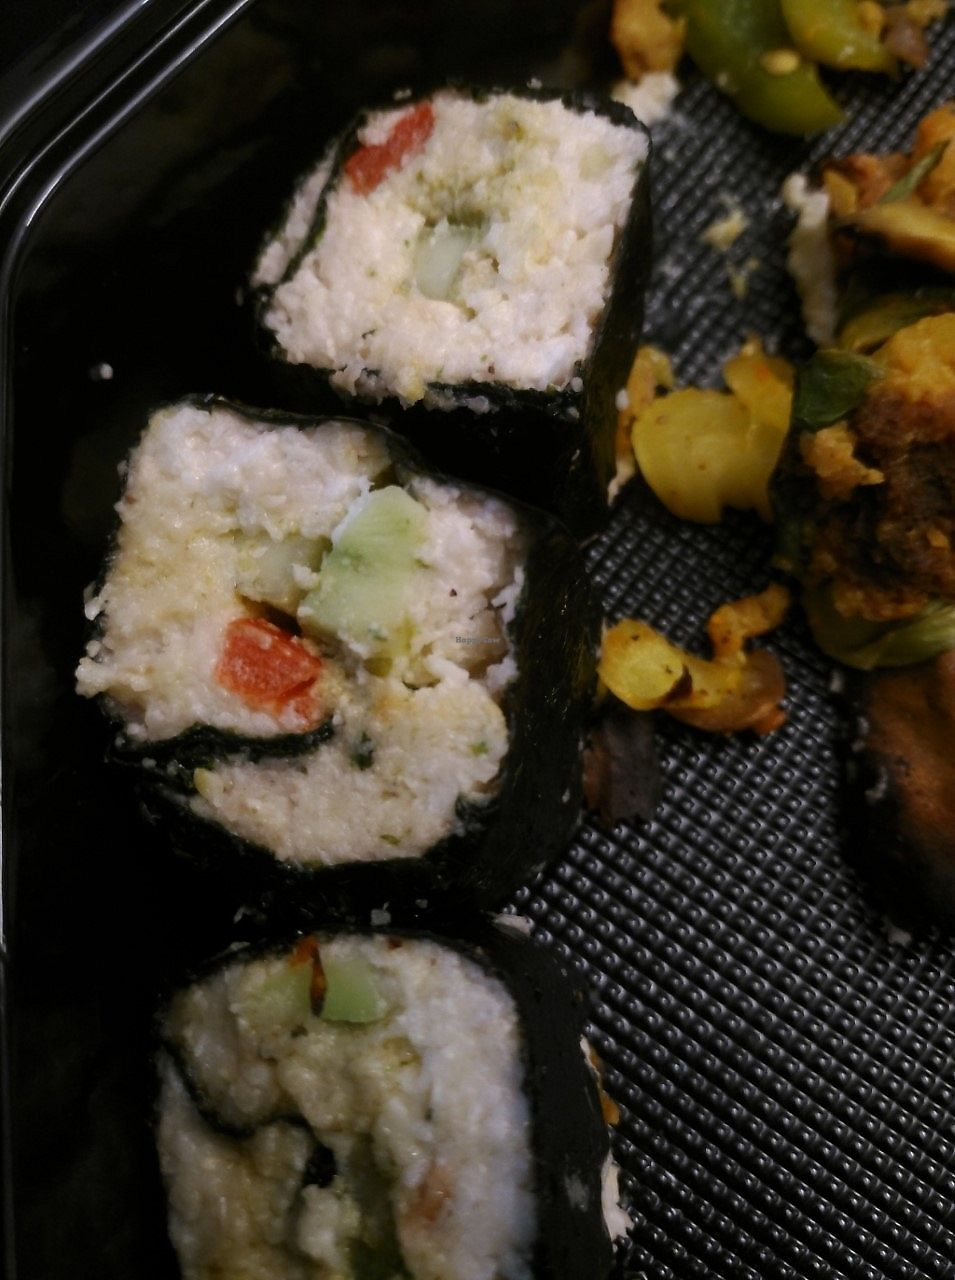 "Photo of Moonfood  by <a href=""/members/profile/mcquinten2"">mcquinten2</a> <br/>vegan sushi <br/> November 25, 2017  - <a href='/contact/abuse/image/57113/328964'>Report</a>"